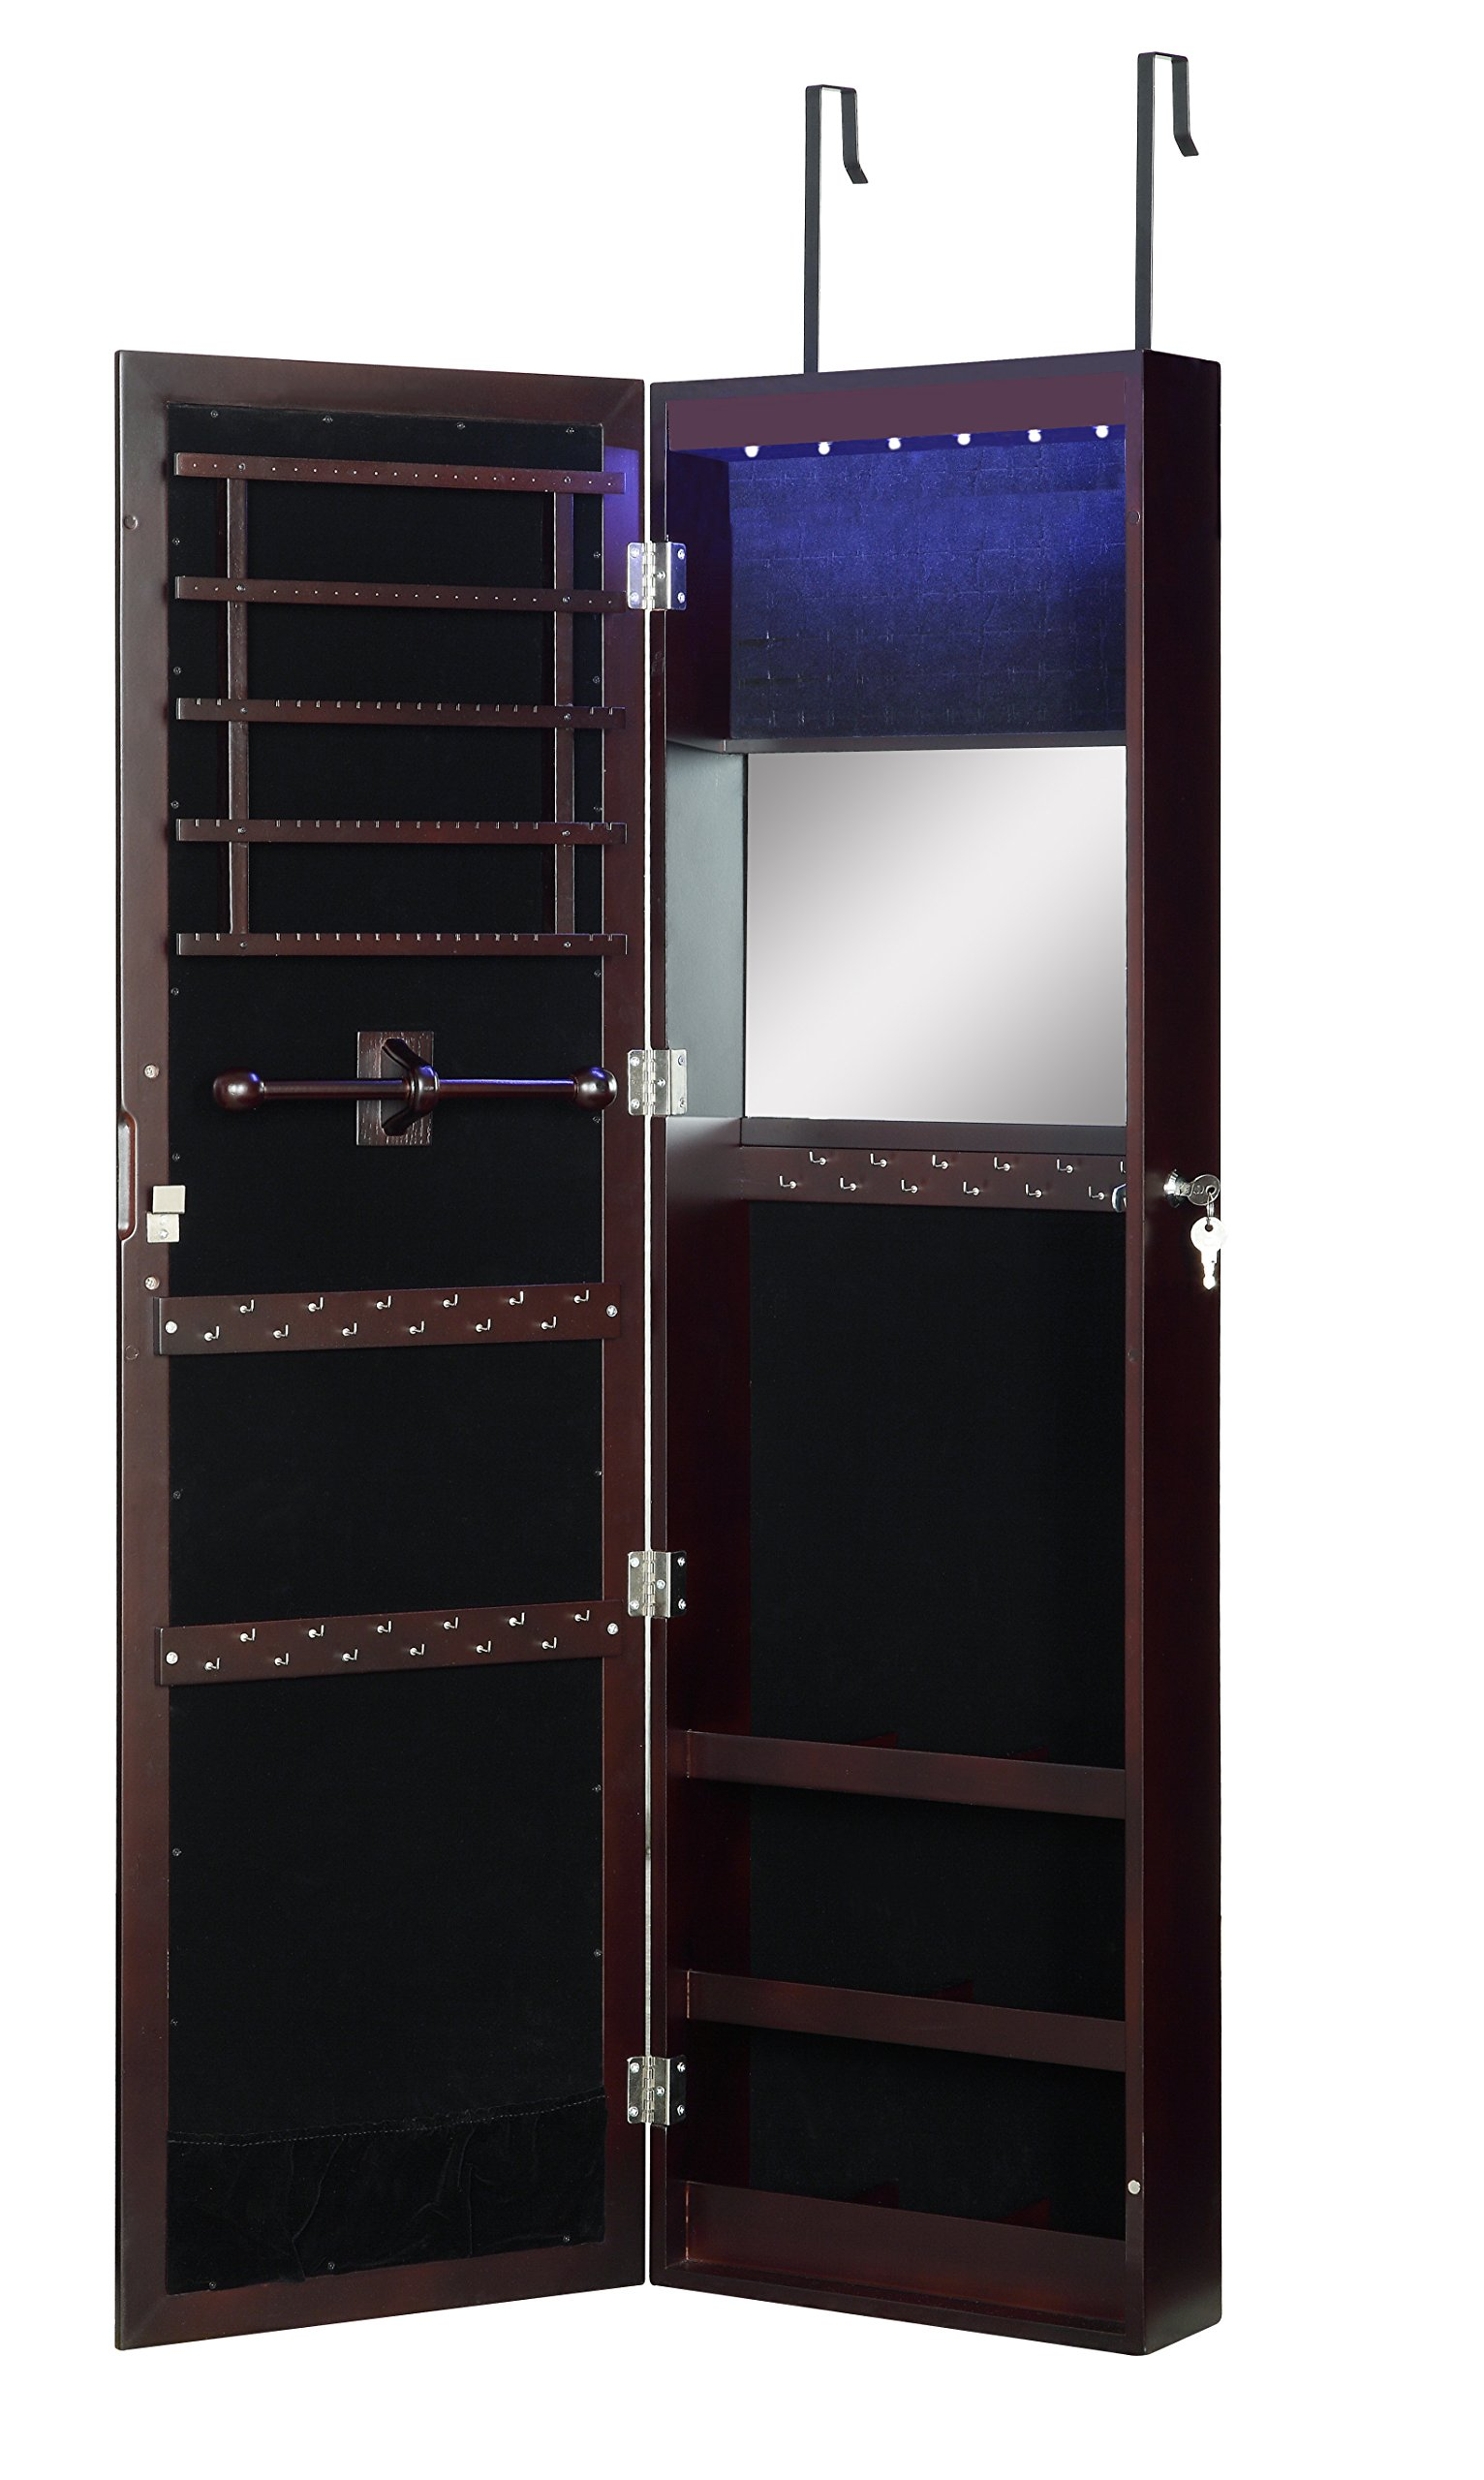 Lockable Wall Mounted Over the Door Jewelry Organizer Armoire Cabinet with Mirror and LED Lights by Abington Lane